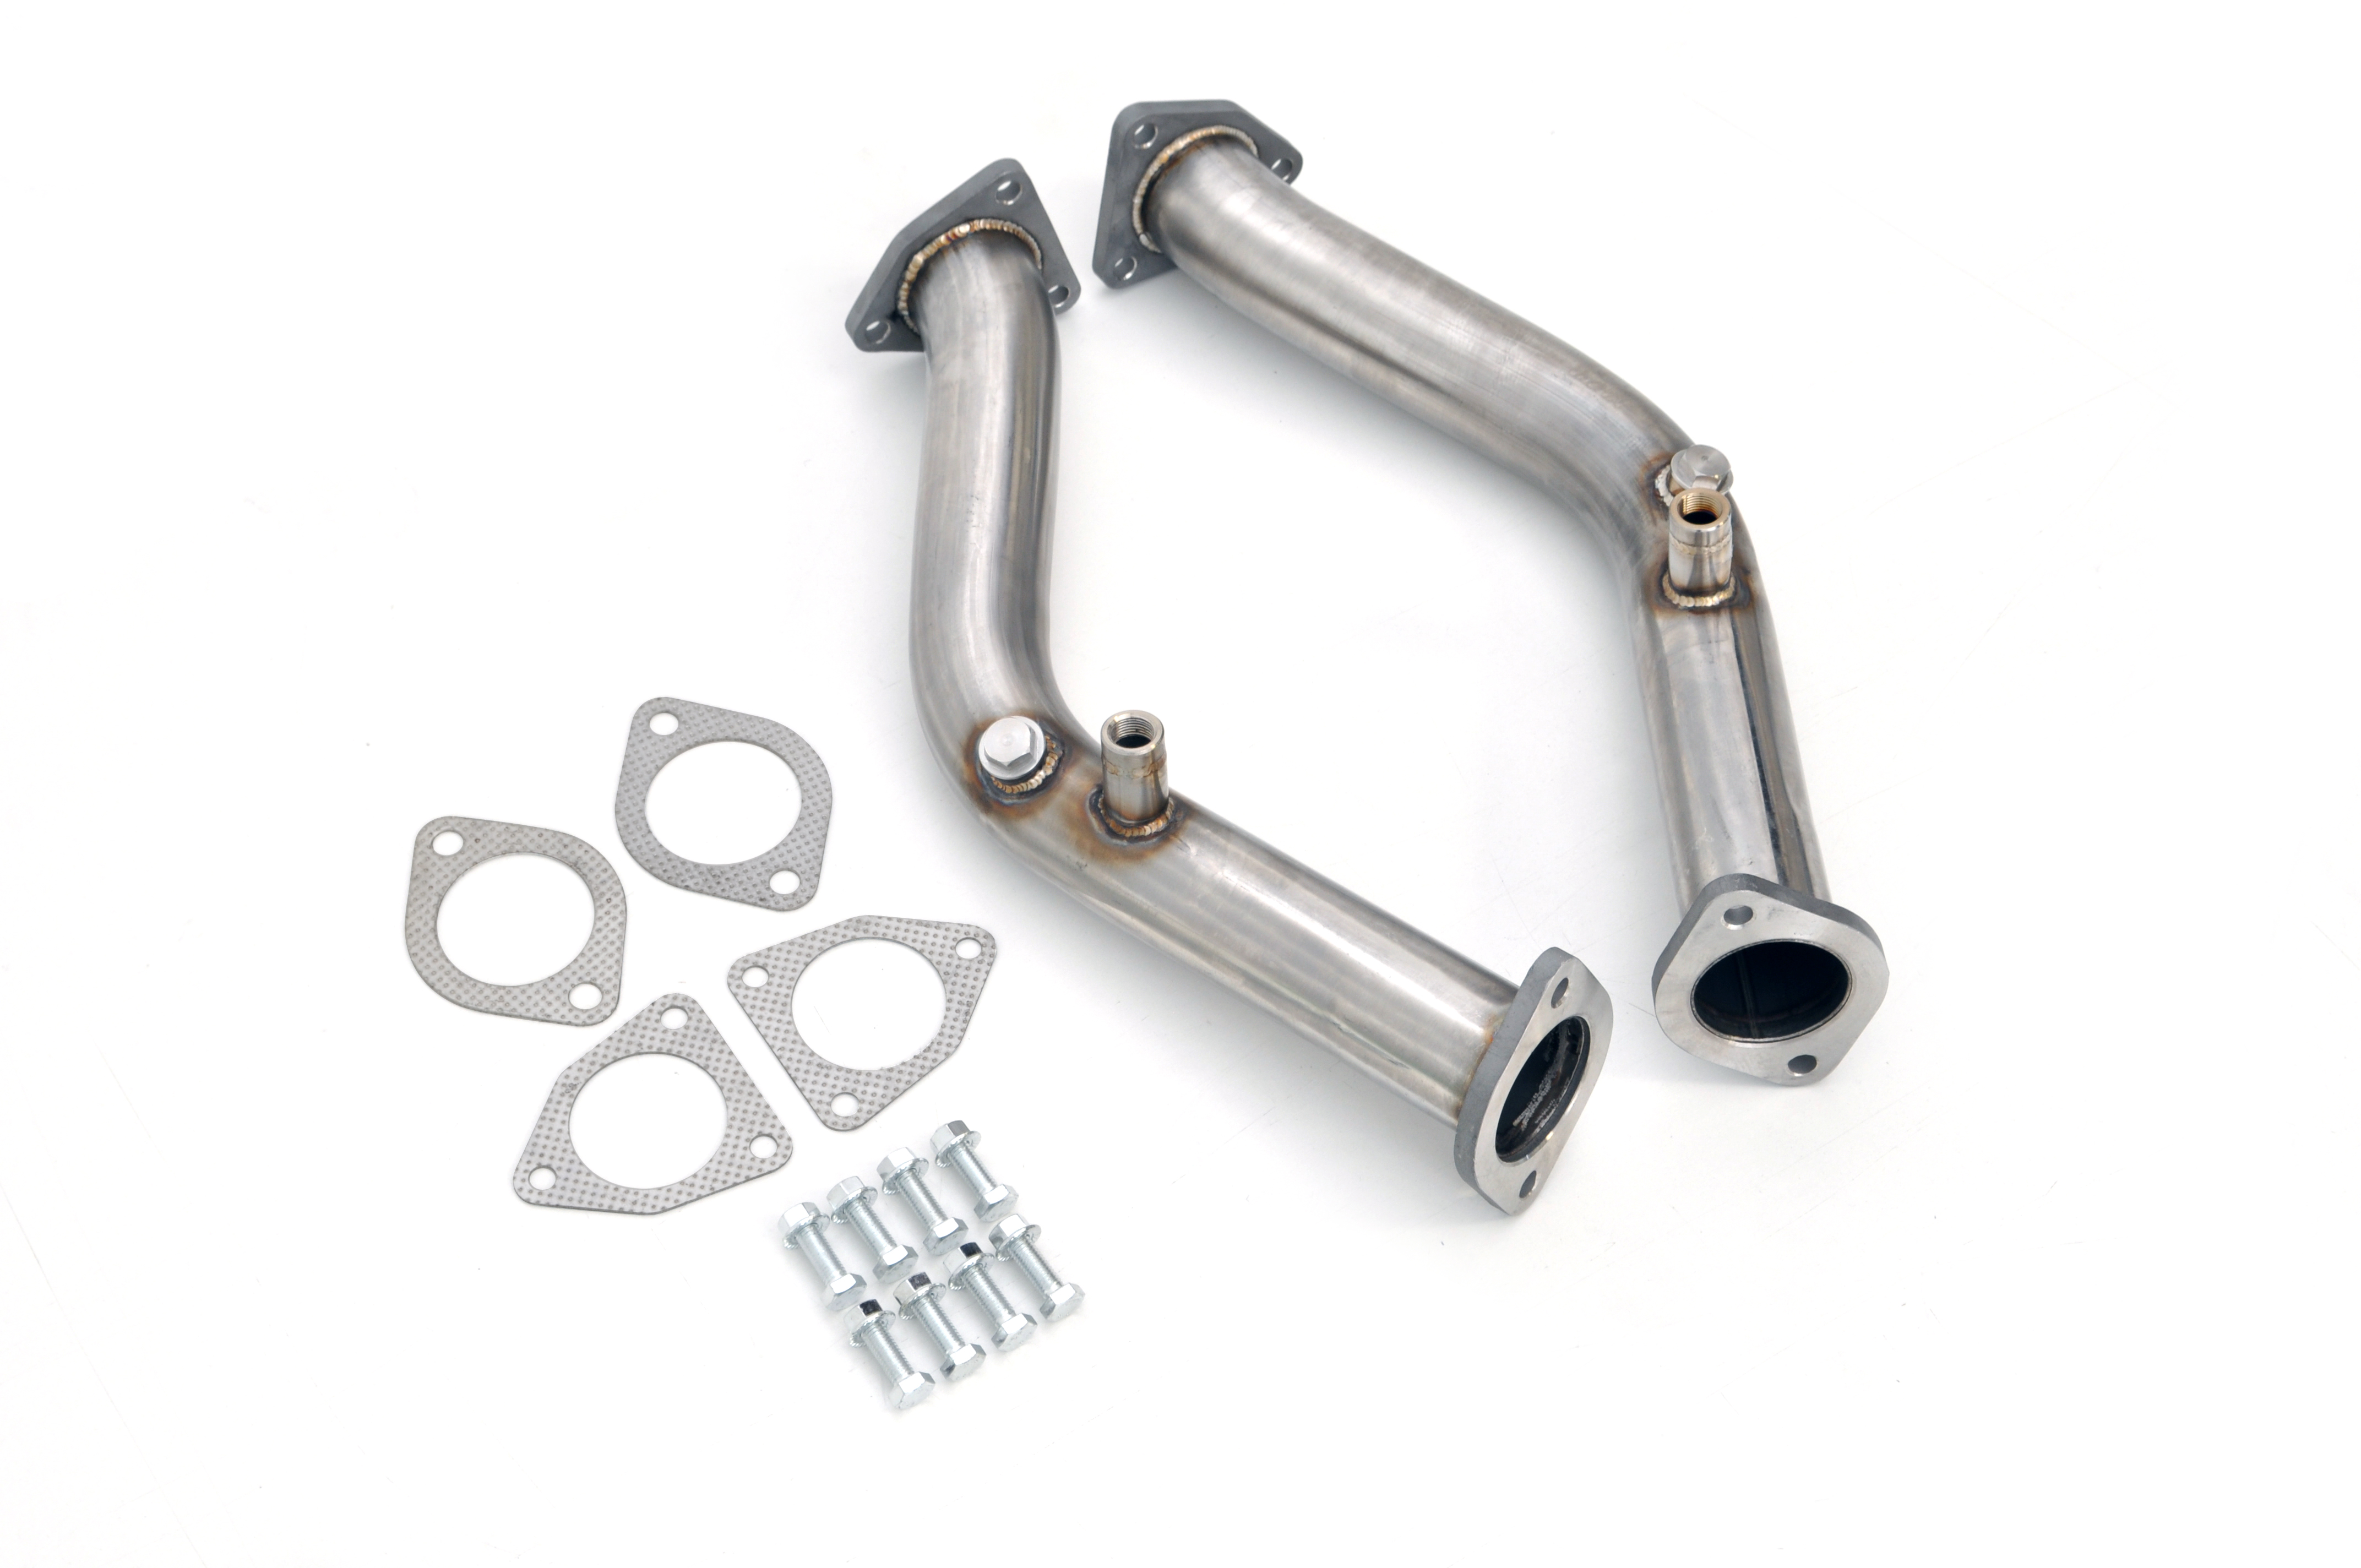 Berk Technology Test Pipes 07 350z Z33 G35 Sedan V35 370z Z34 G37 Coupe V36 Corner3 Motorsports